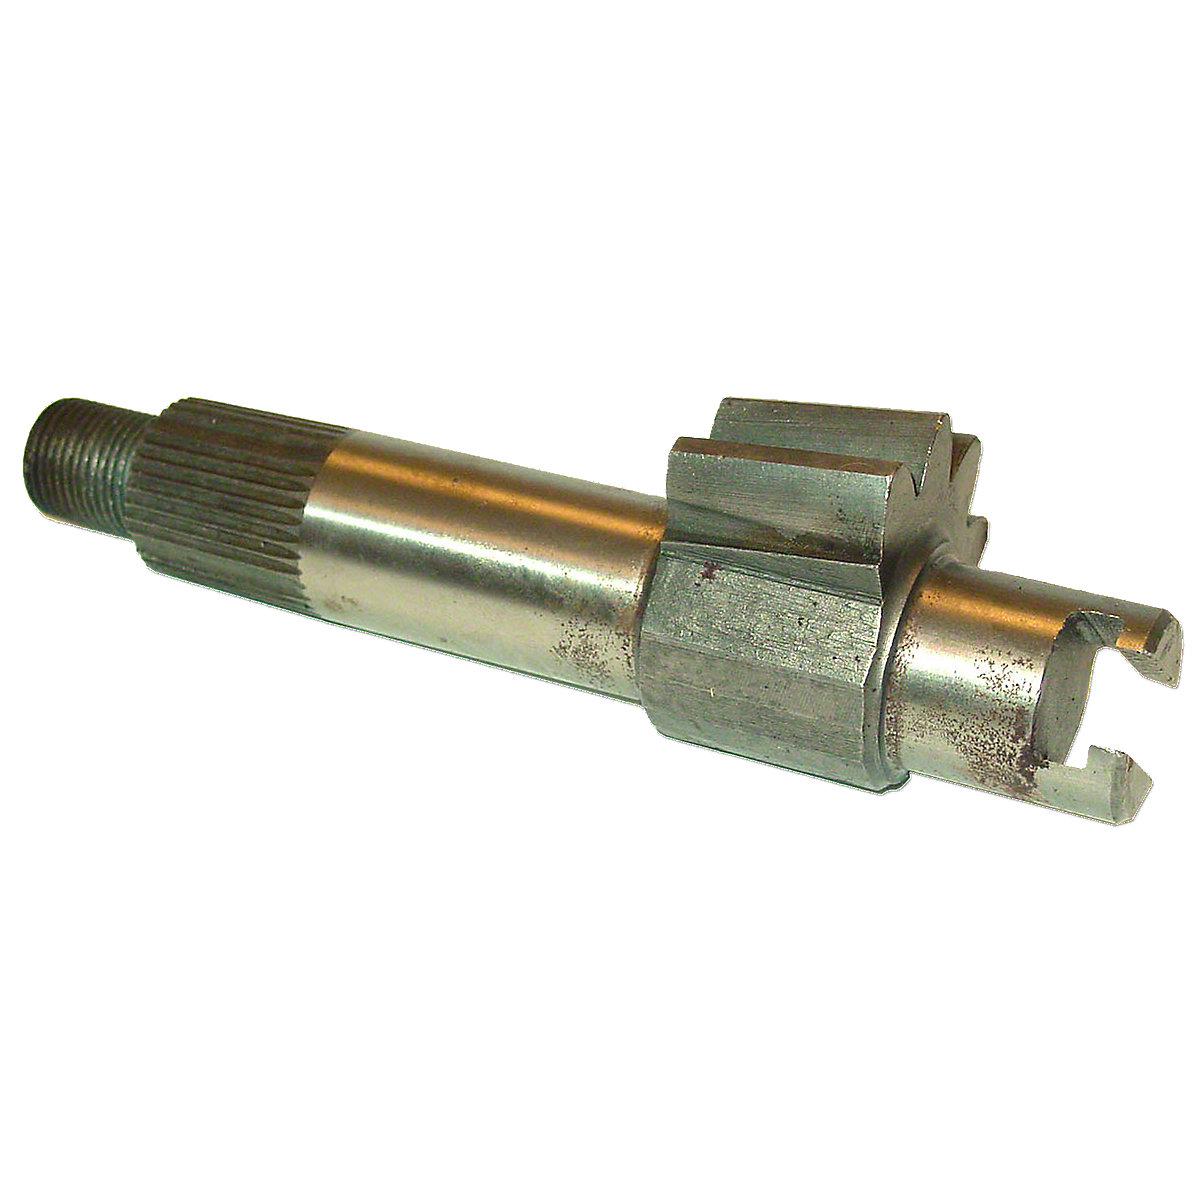 601 Ford Tractor Steering Sector : Fds steering sector rh